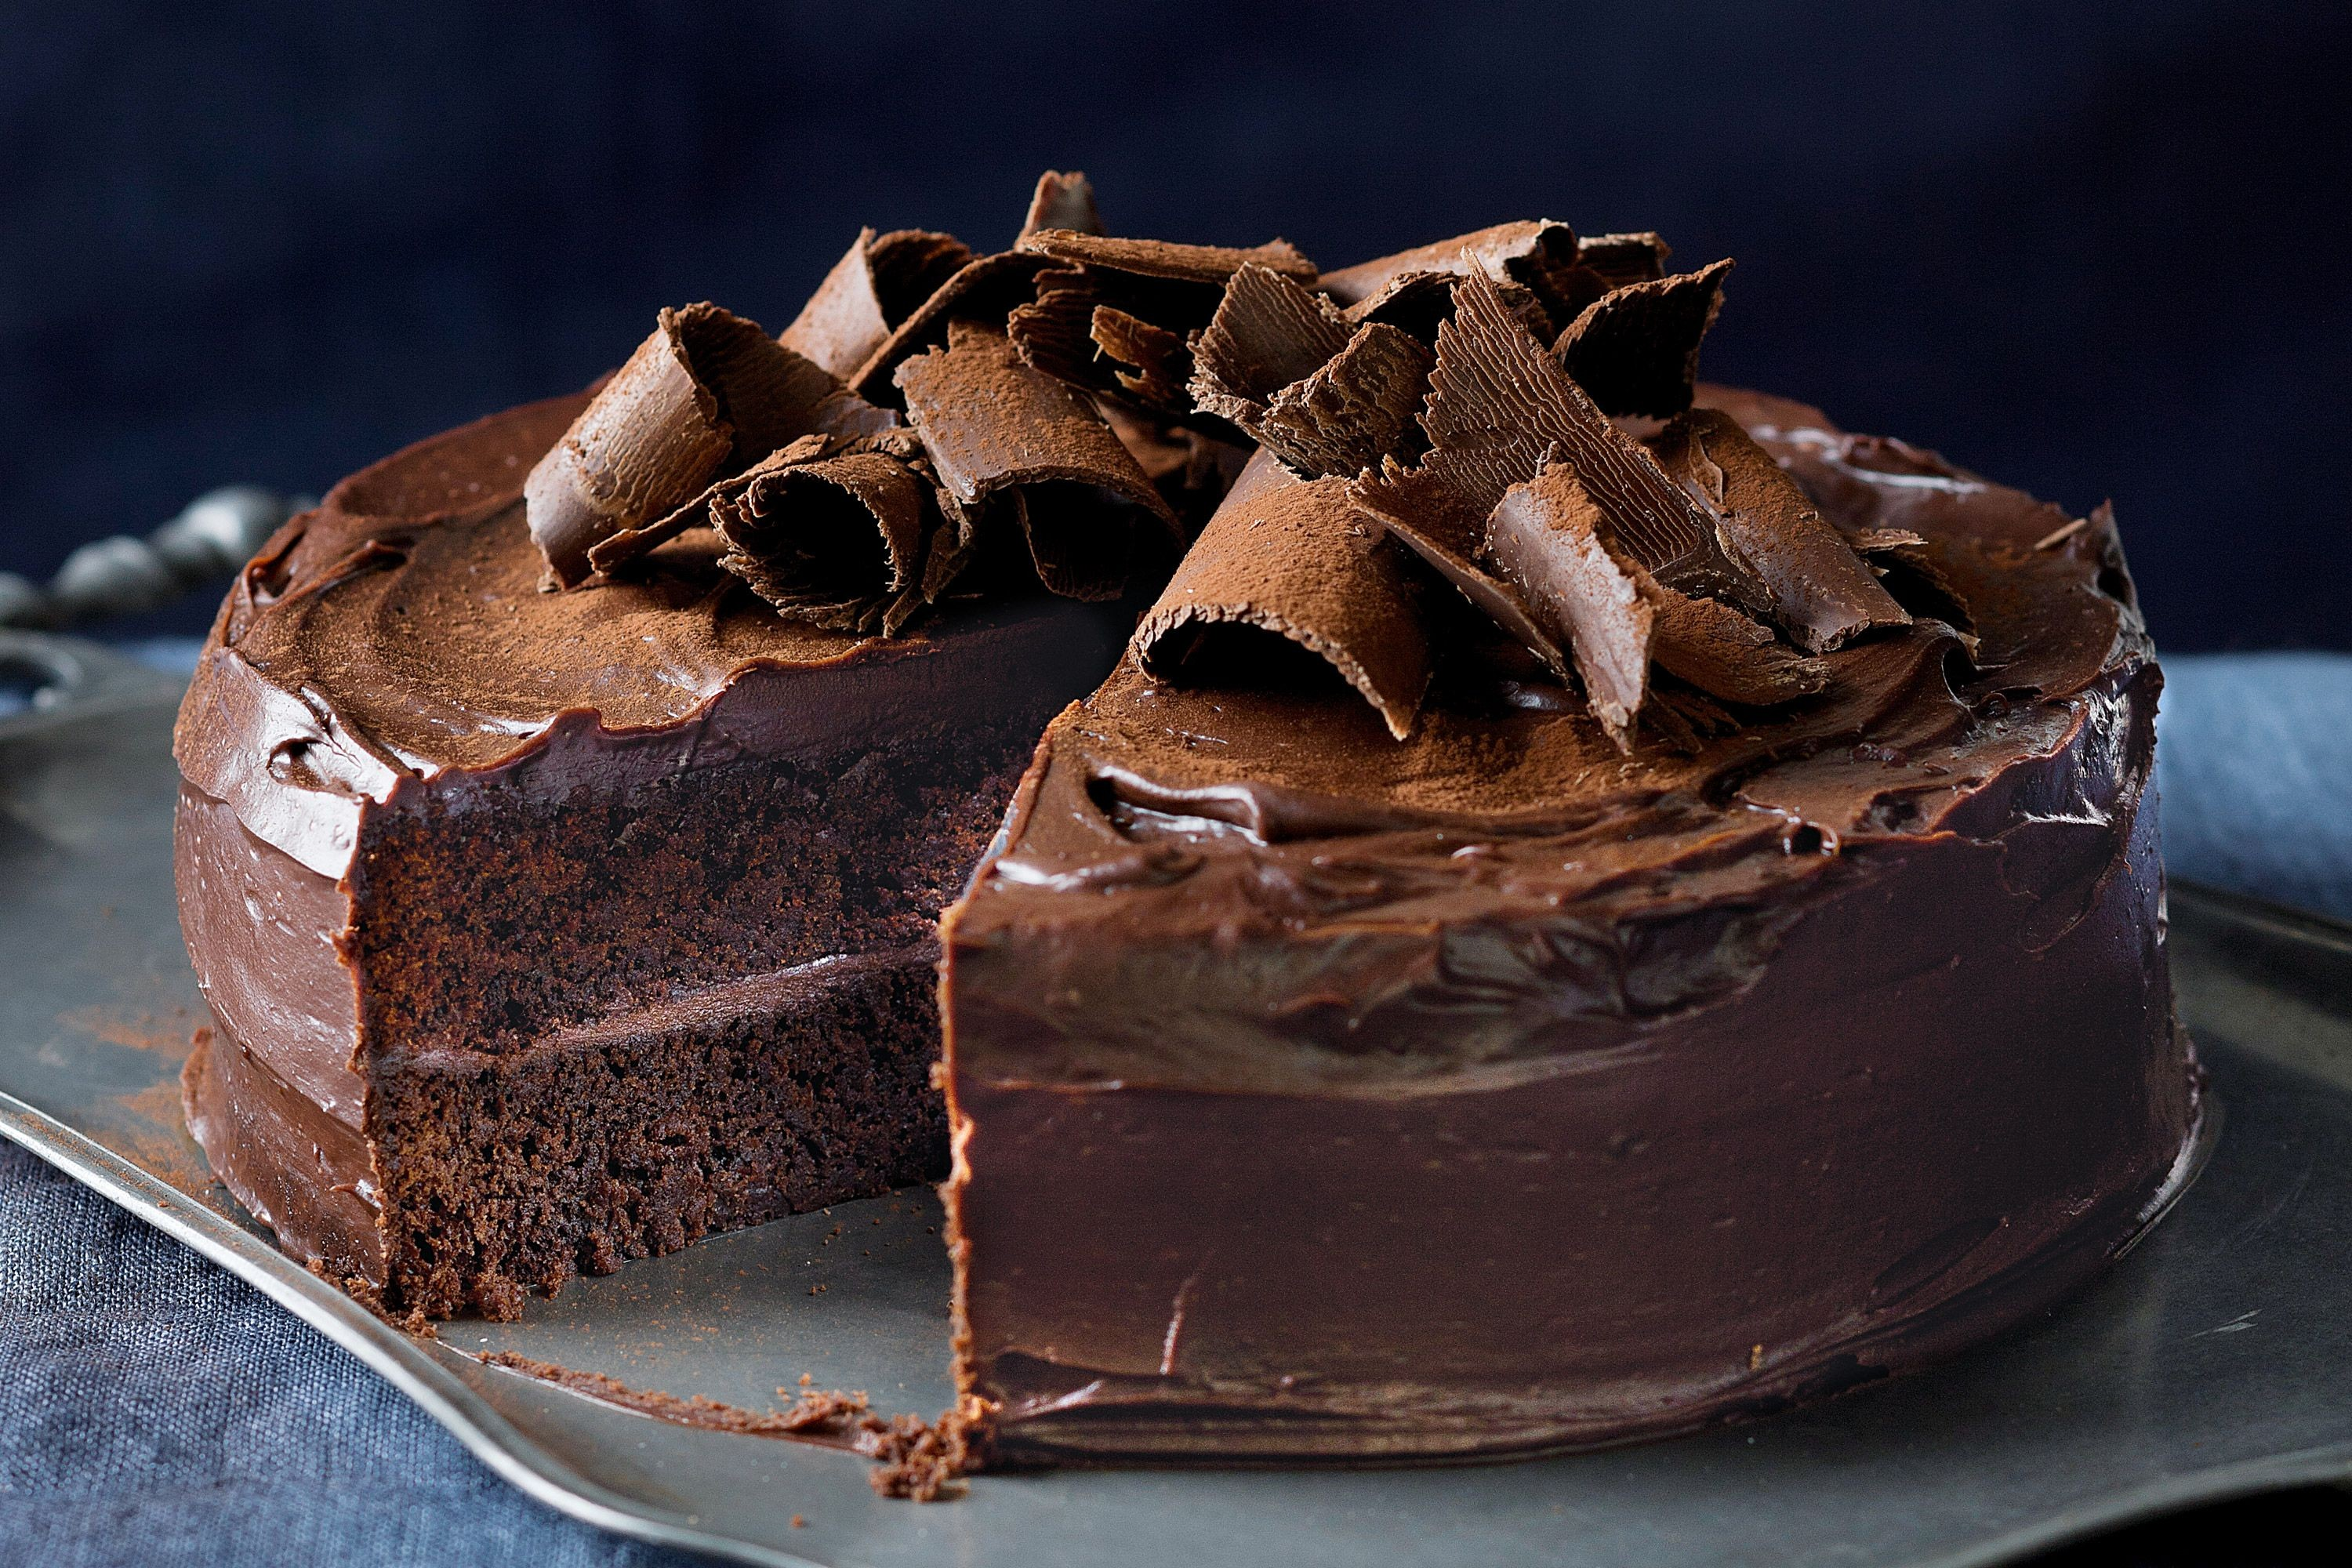 favourite-chocolate-cake-60559-1